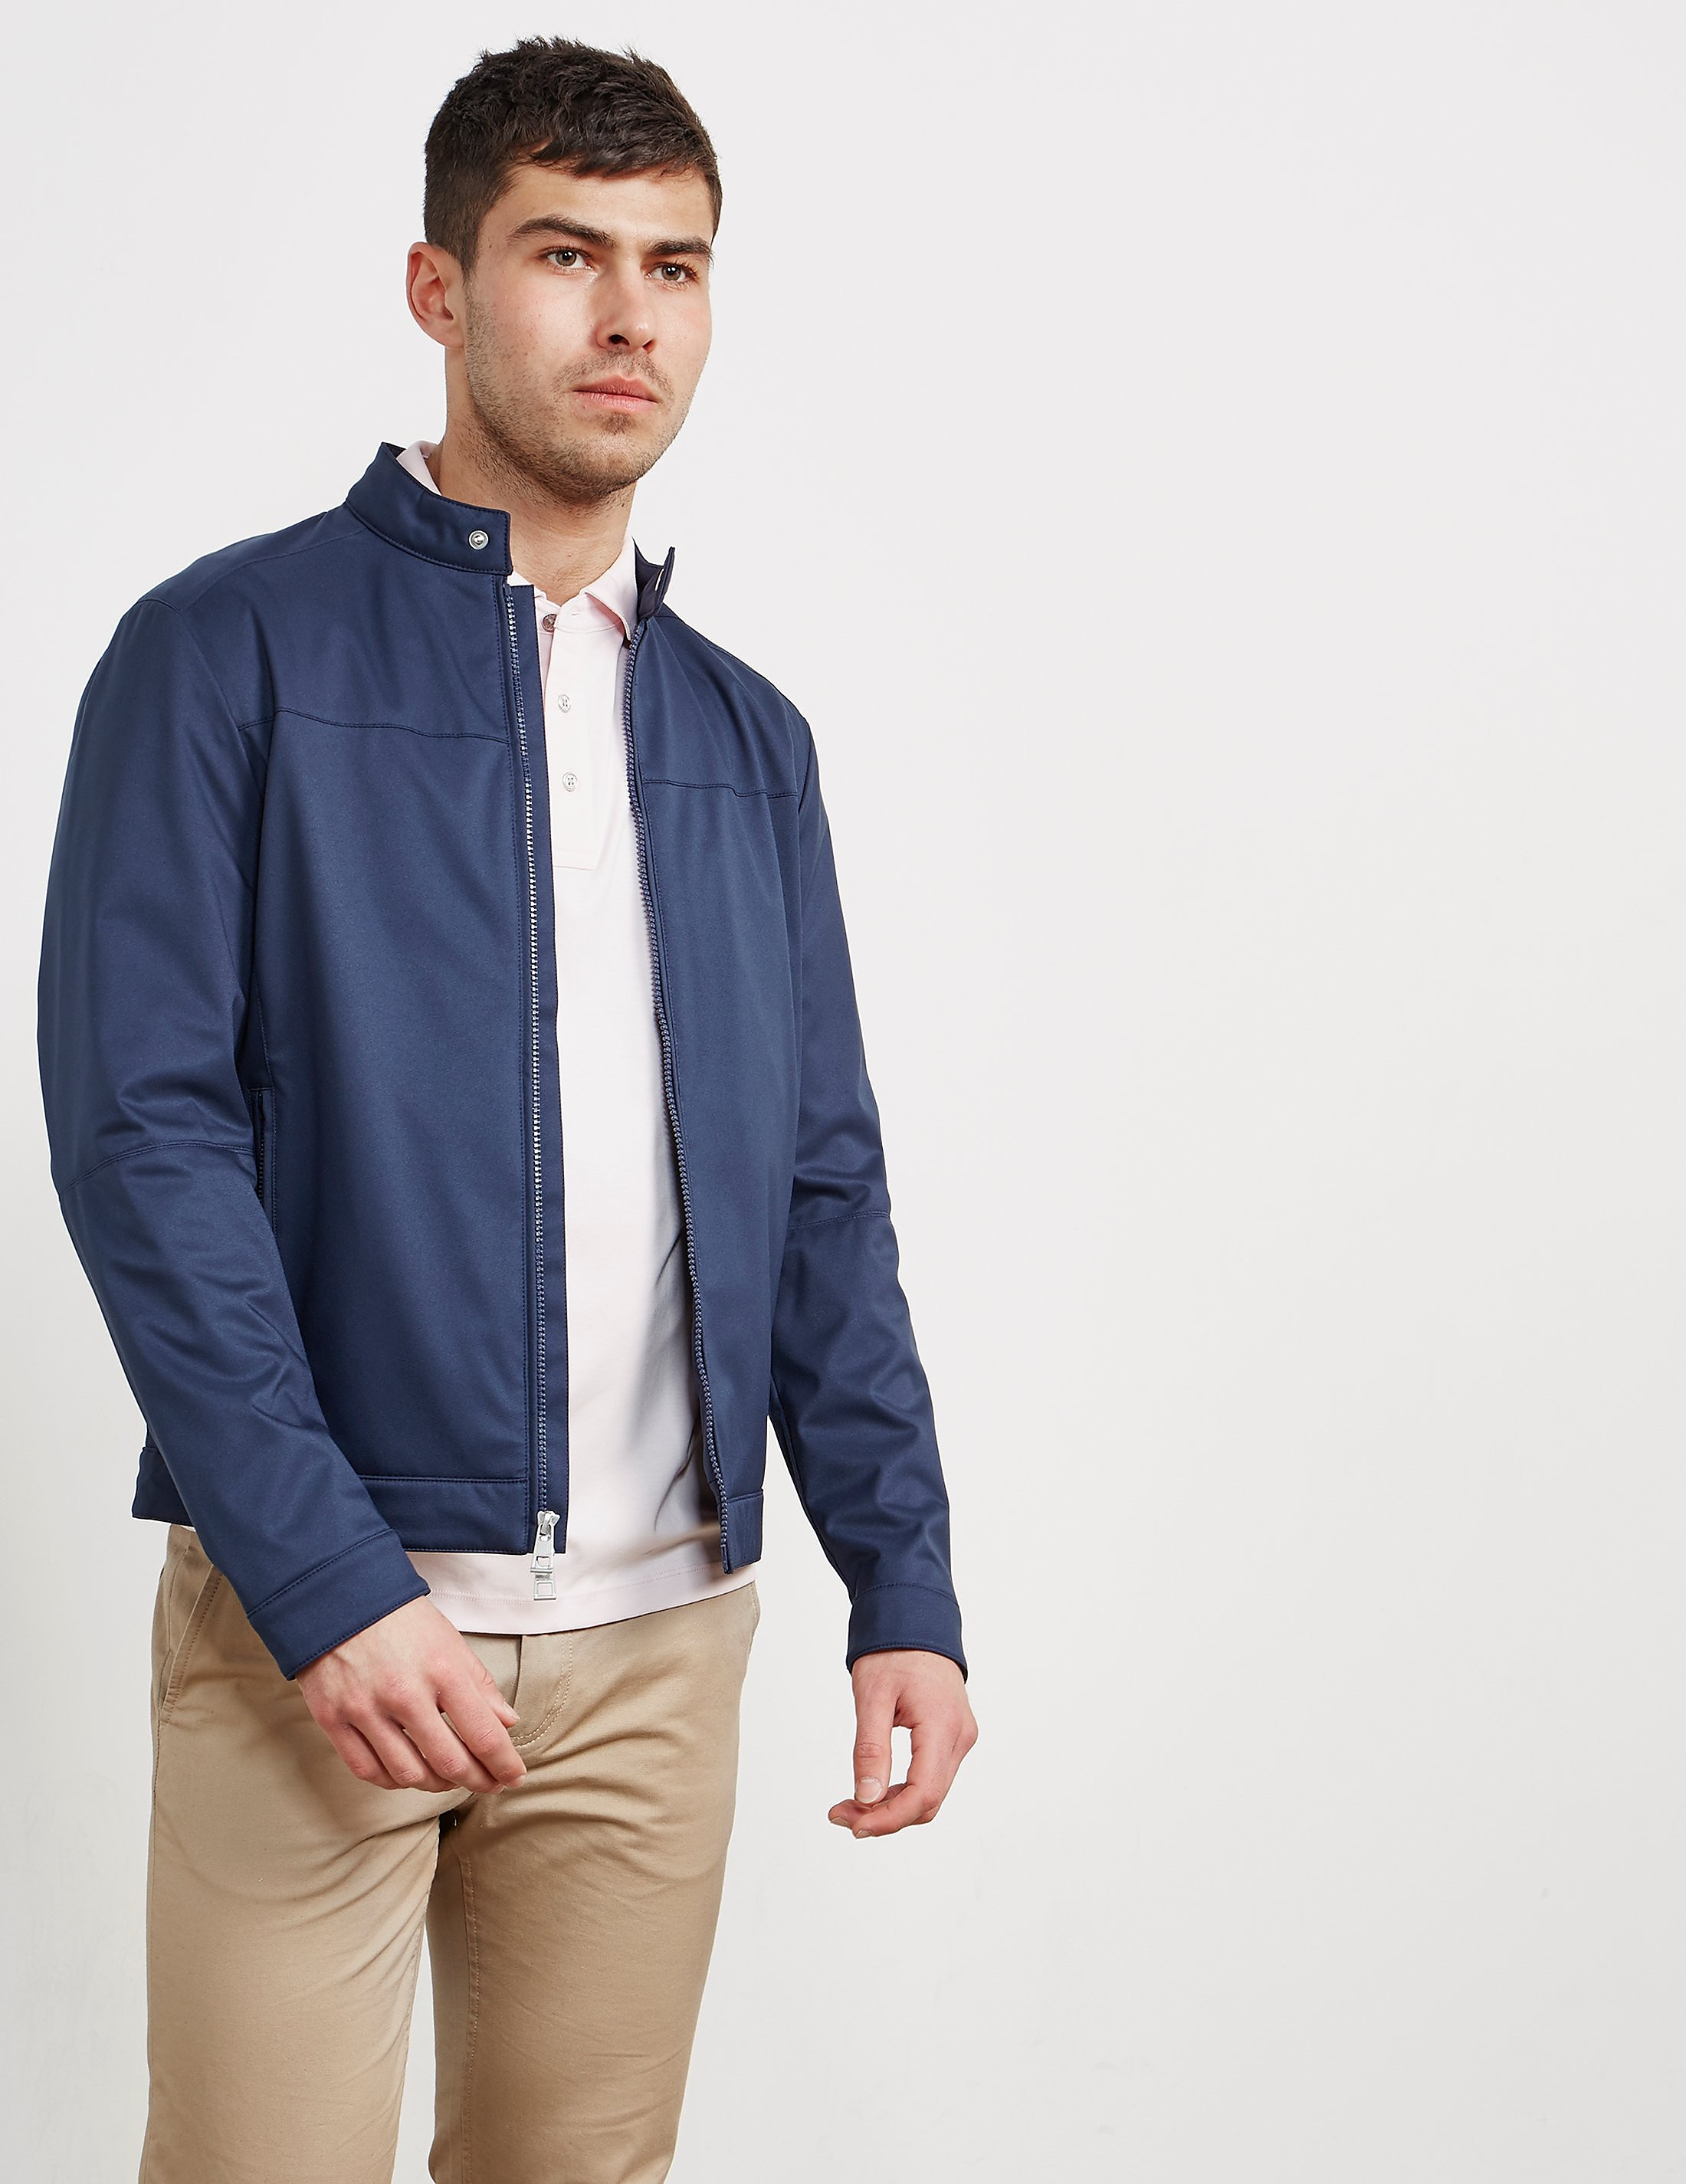 Michael Kors Soft Harrington Jacket